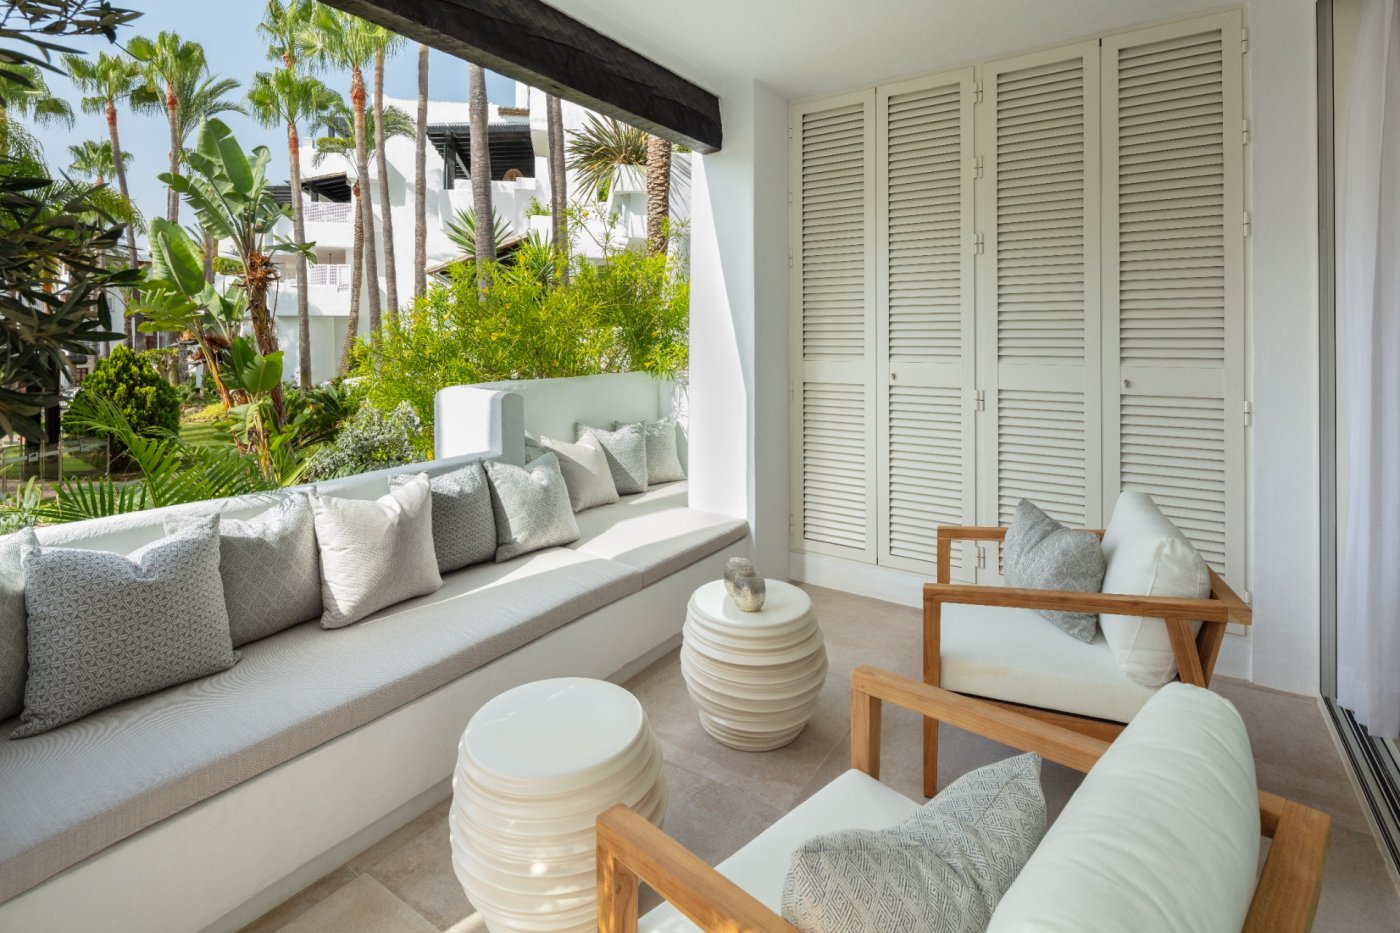 A fantastic 4 bedroom apartment in an awesome location next to quality restaurants and the beach.